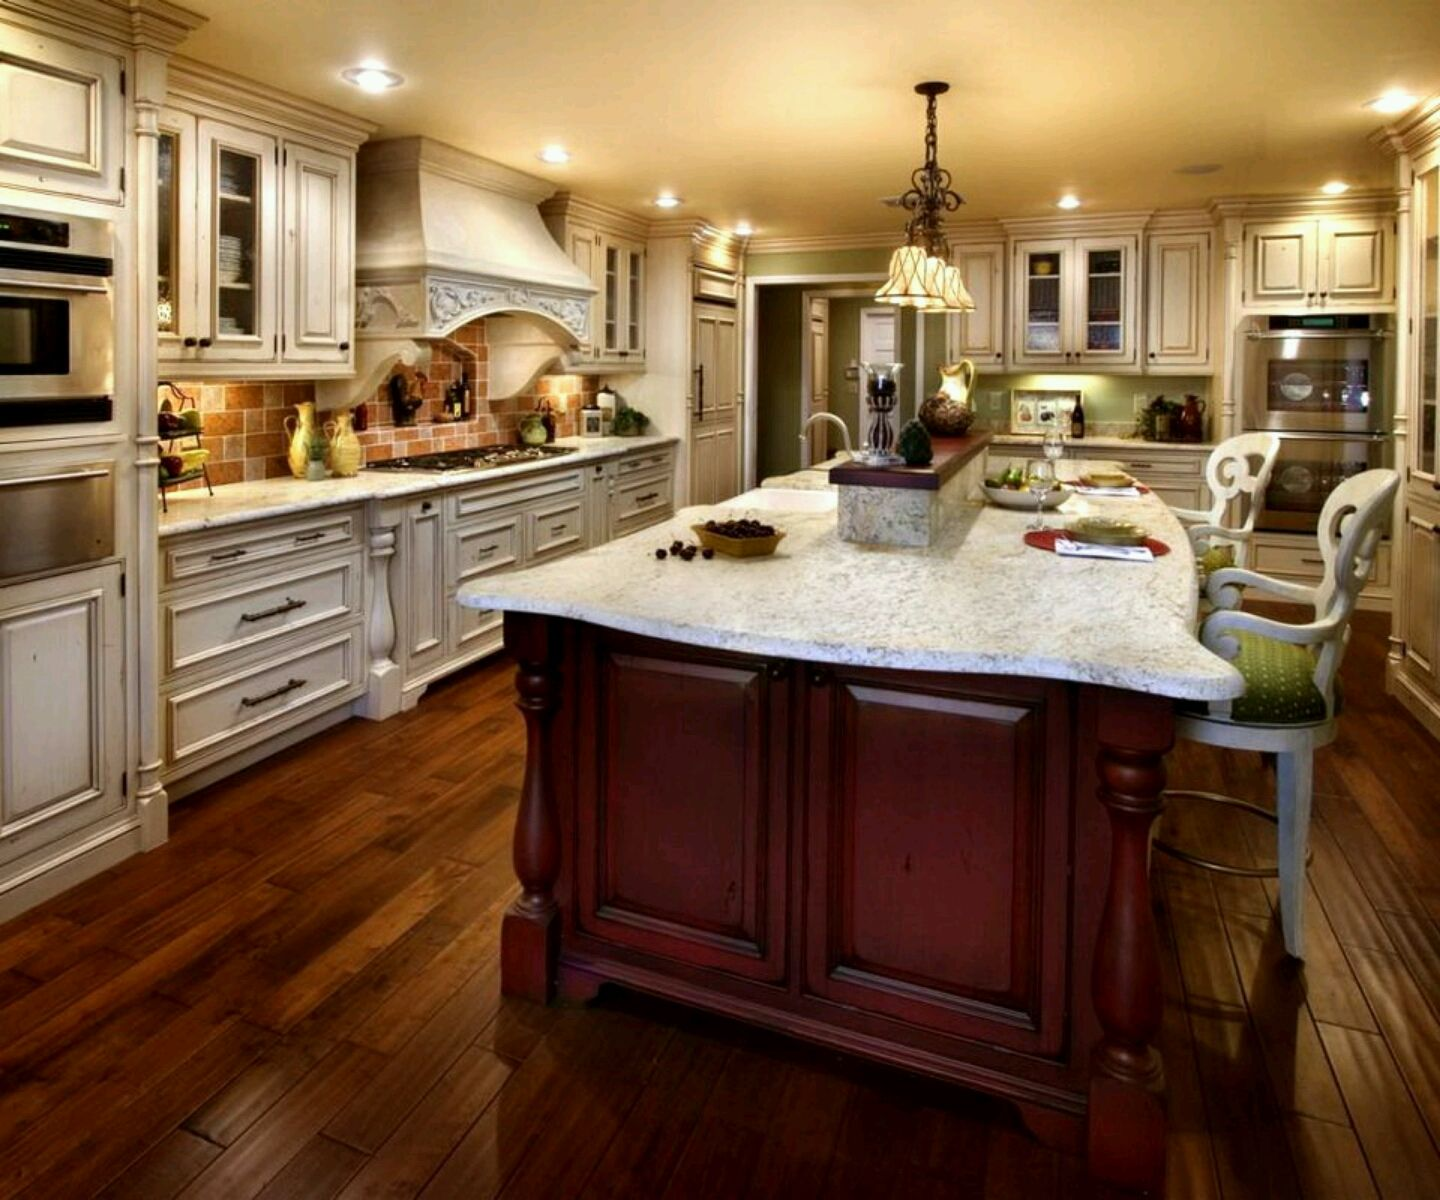 Modern Kitchen Cabinets Luxury Kitchen Design and Solid Wood. Long Narrow Kitchen Ideas. 25 Long Narrow Kitchen Onsmall. Best Kitchen Countertop Pictures Color Material Ideas